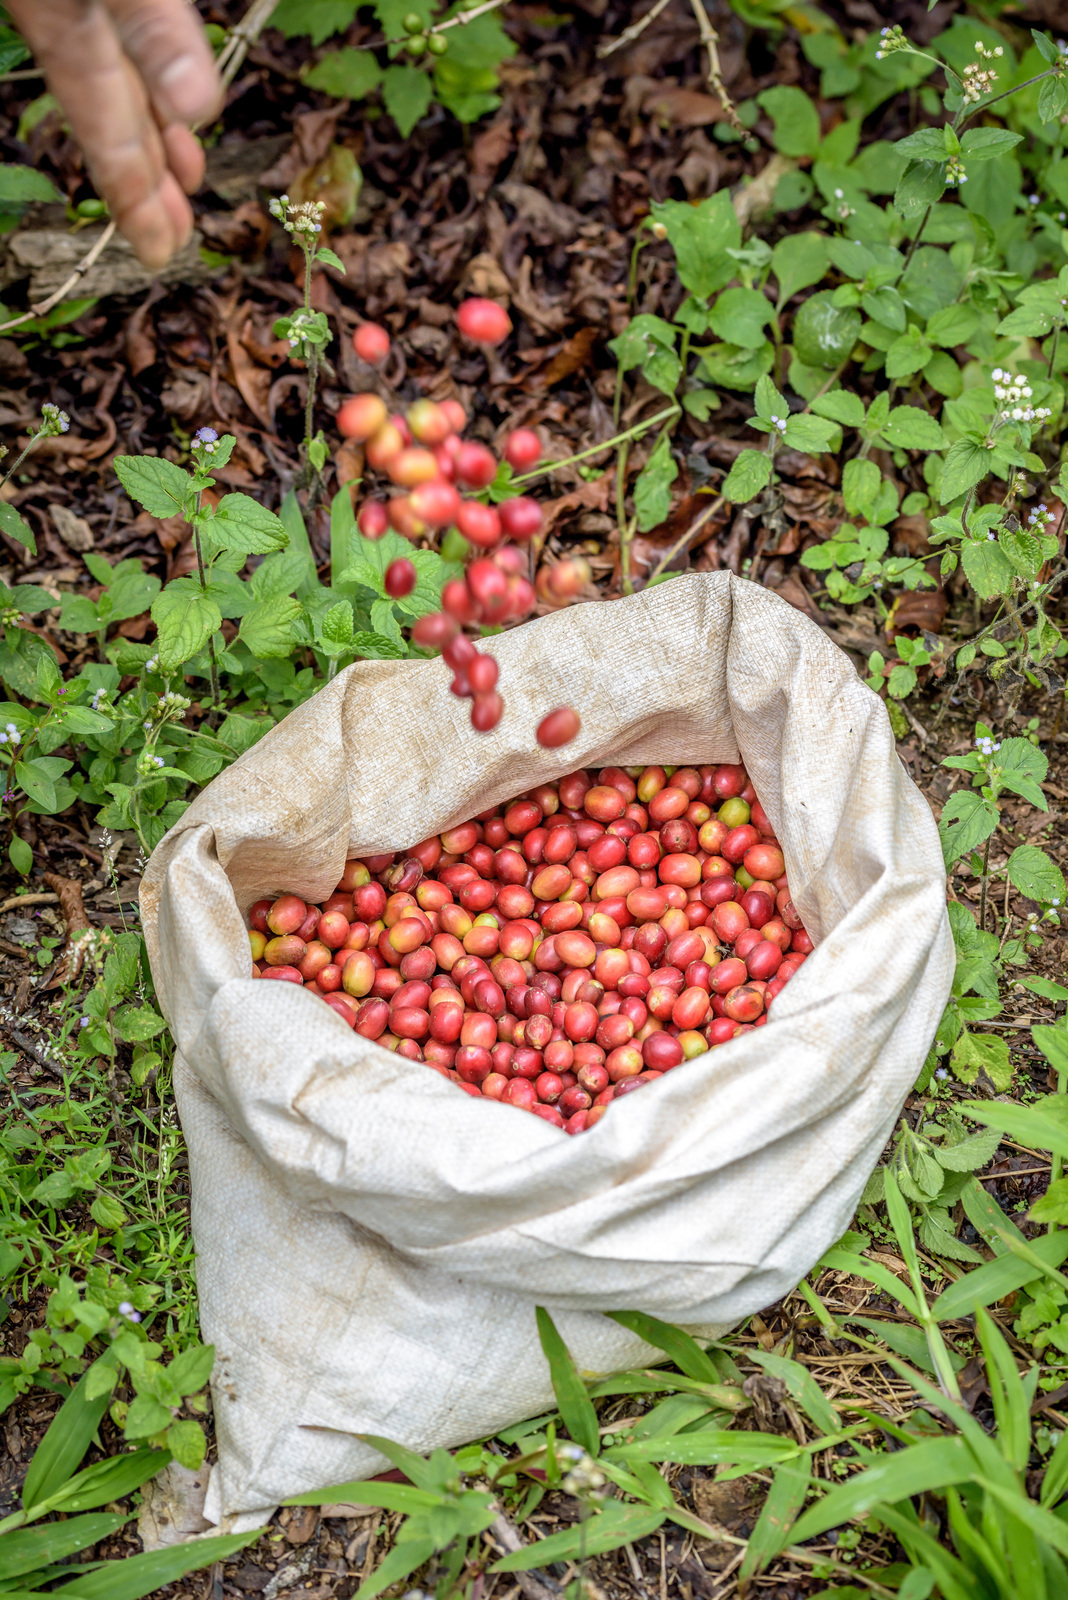 A hand tossing red coffee berries into a sack